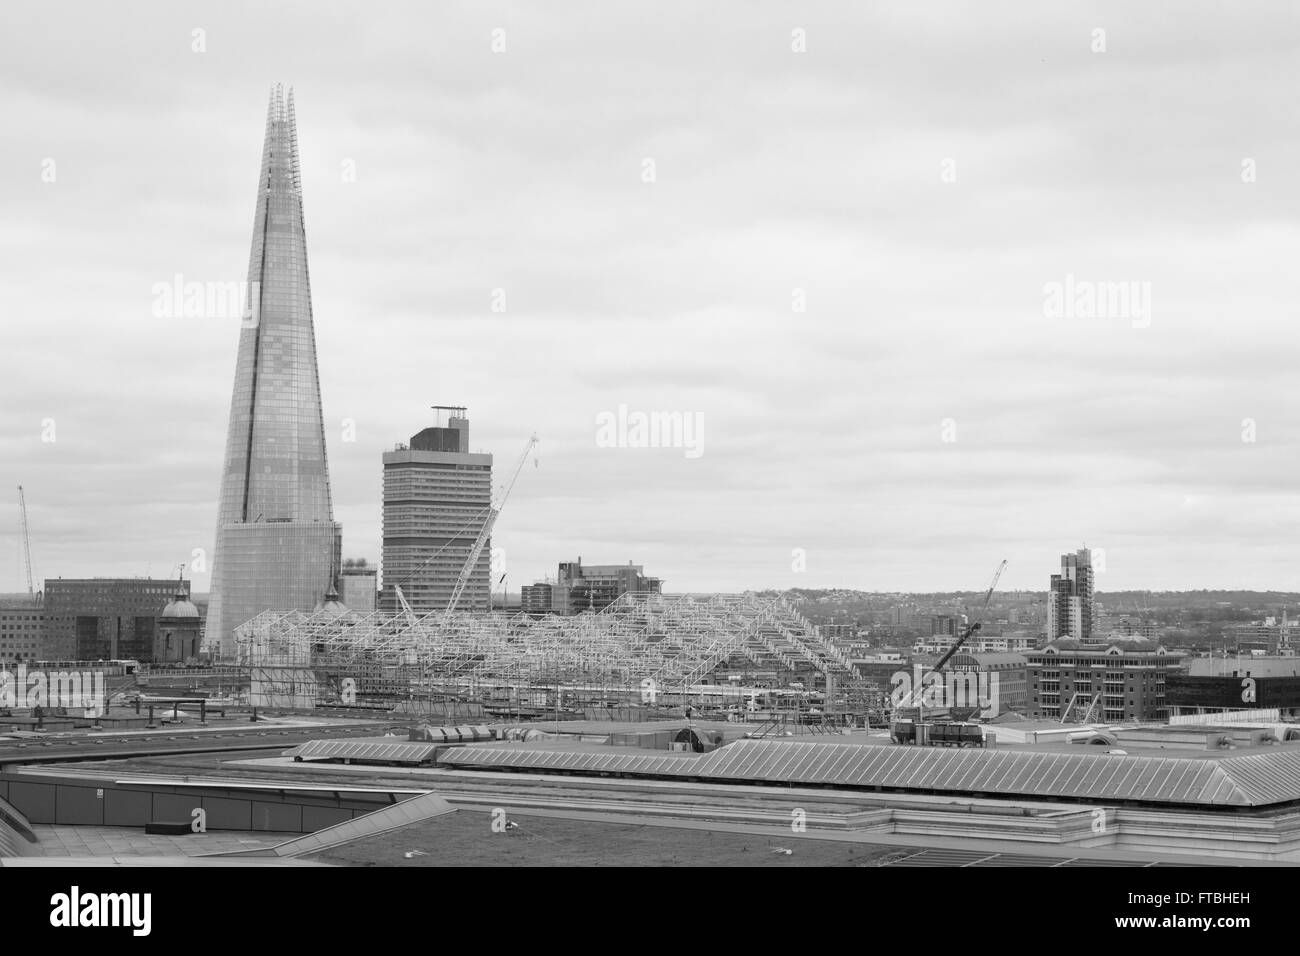 View from the roof top of One New Change in London, England, looking towards the Shard and Guy's Hospital. - Stock Image